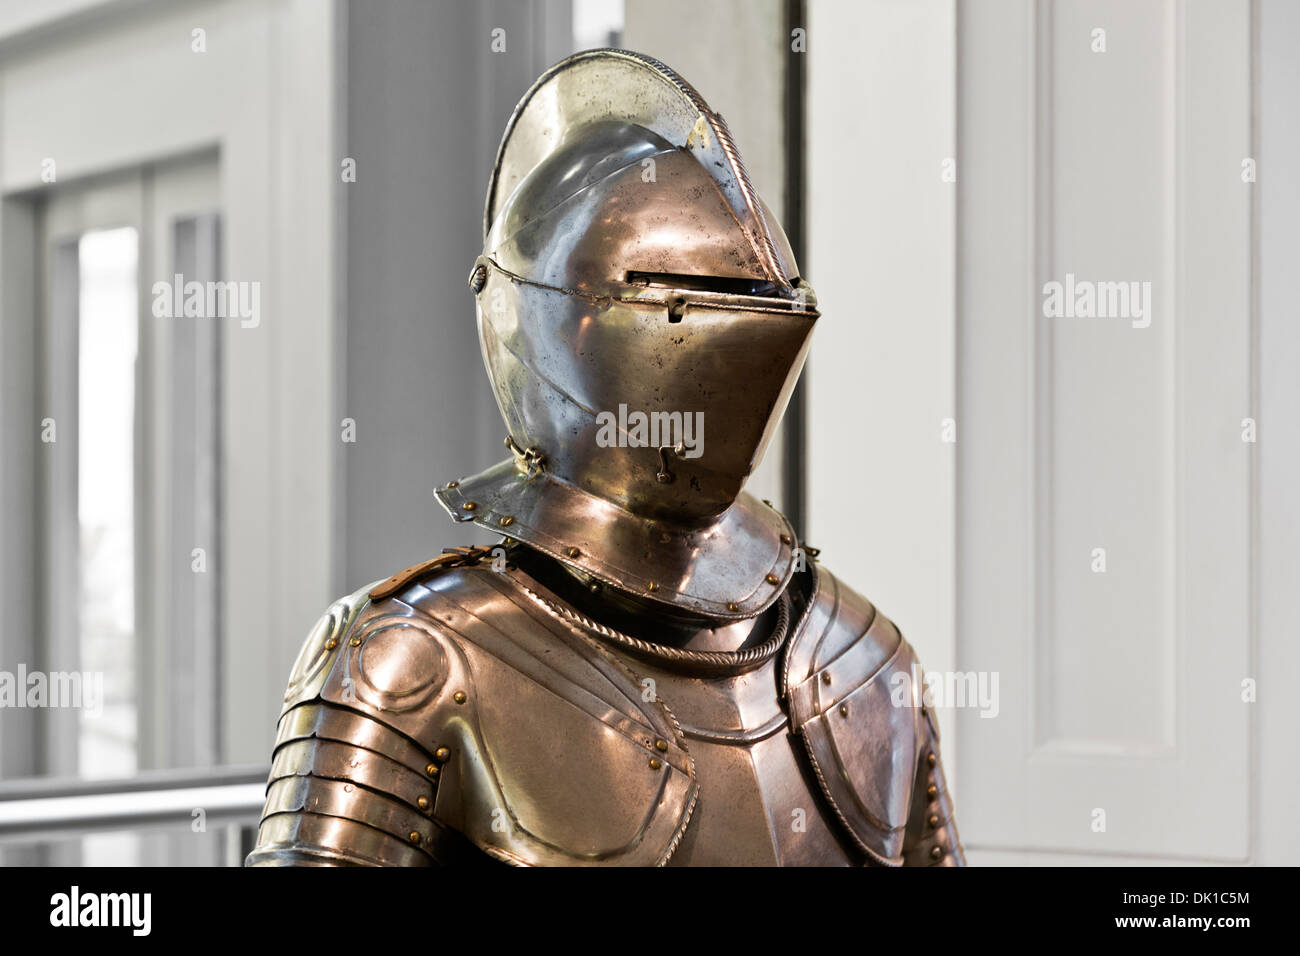 Medieval knight full plate body armour on display at the Fitzwilliam Museum, Cambridge, England - Stock Image